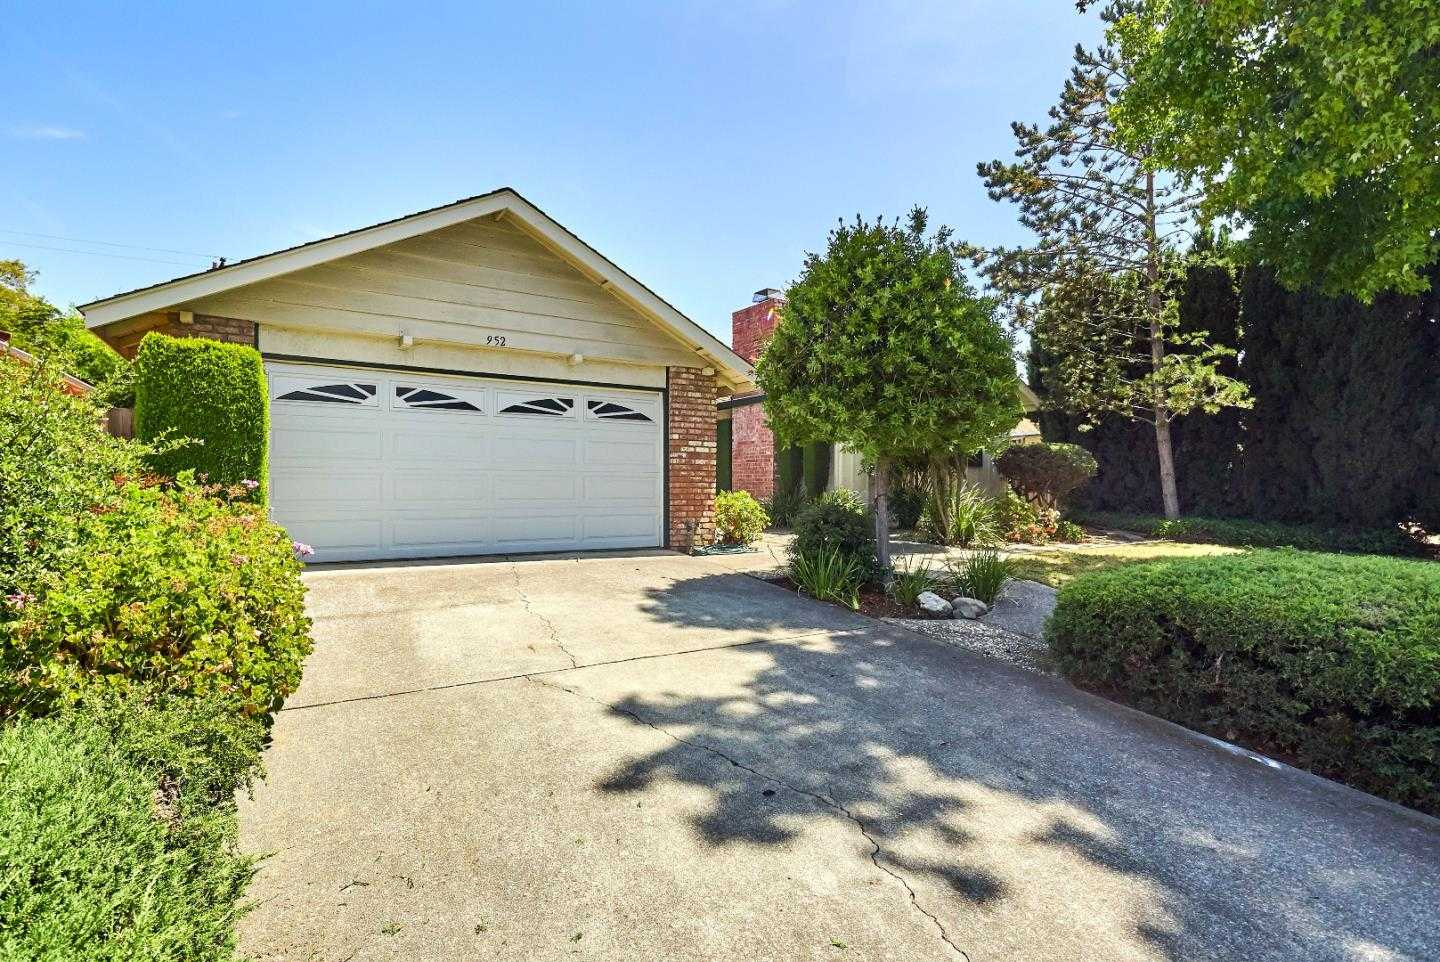 $1,449,000 - 4Br/3Ba -  for Sale in Sunnyvale